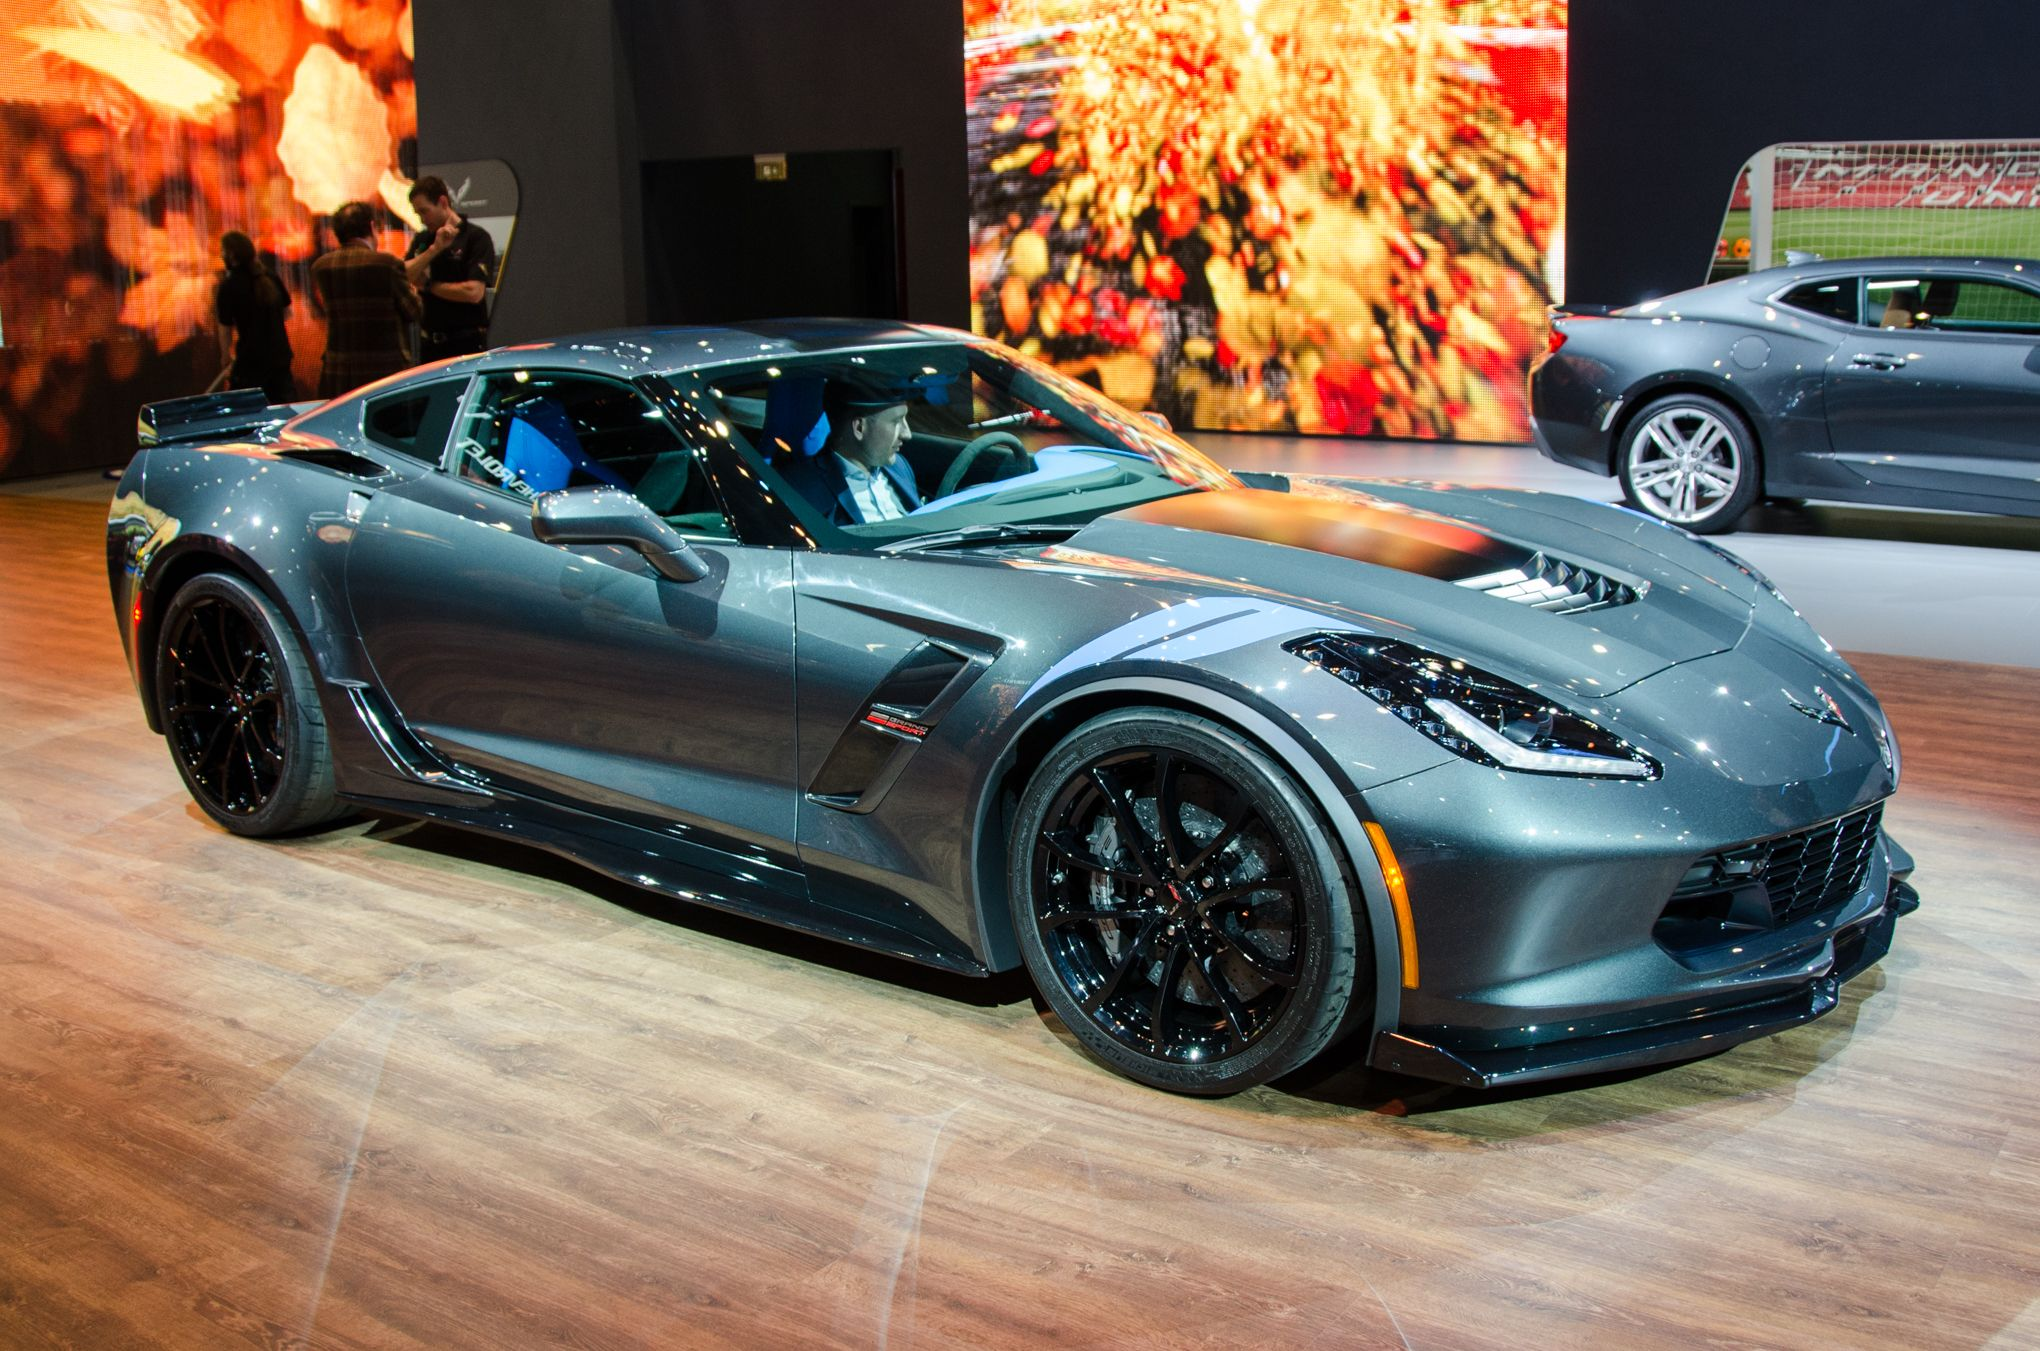 A New Chevrolet Corvette Variant Was Revealed At The 2016 Geneva Auto Show 2017 Grand Sport